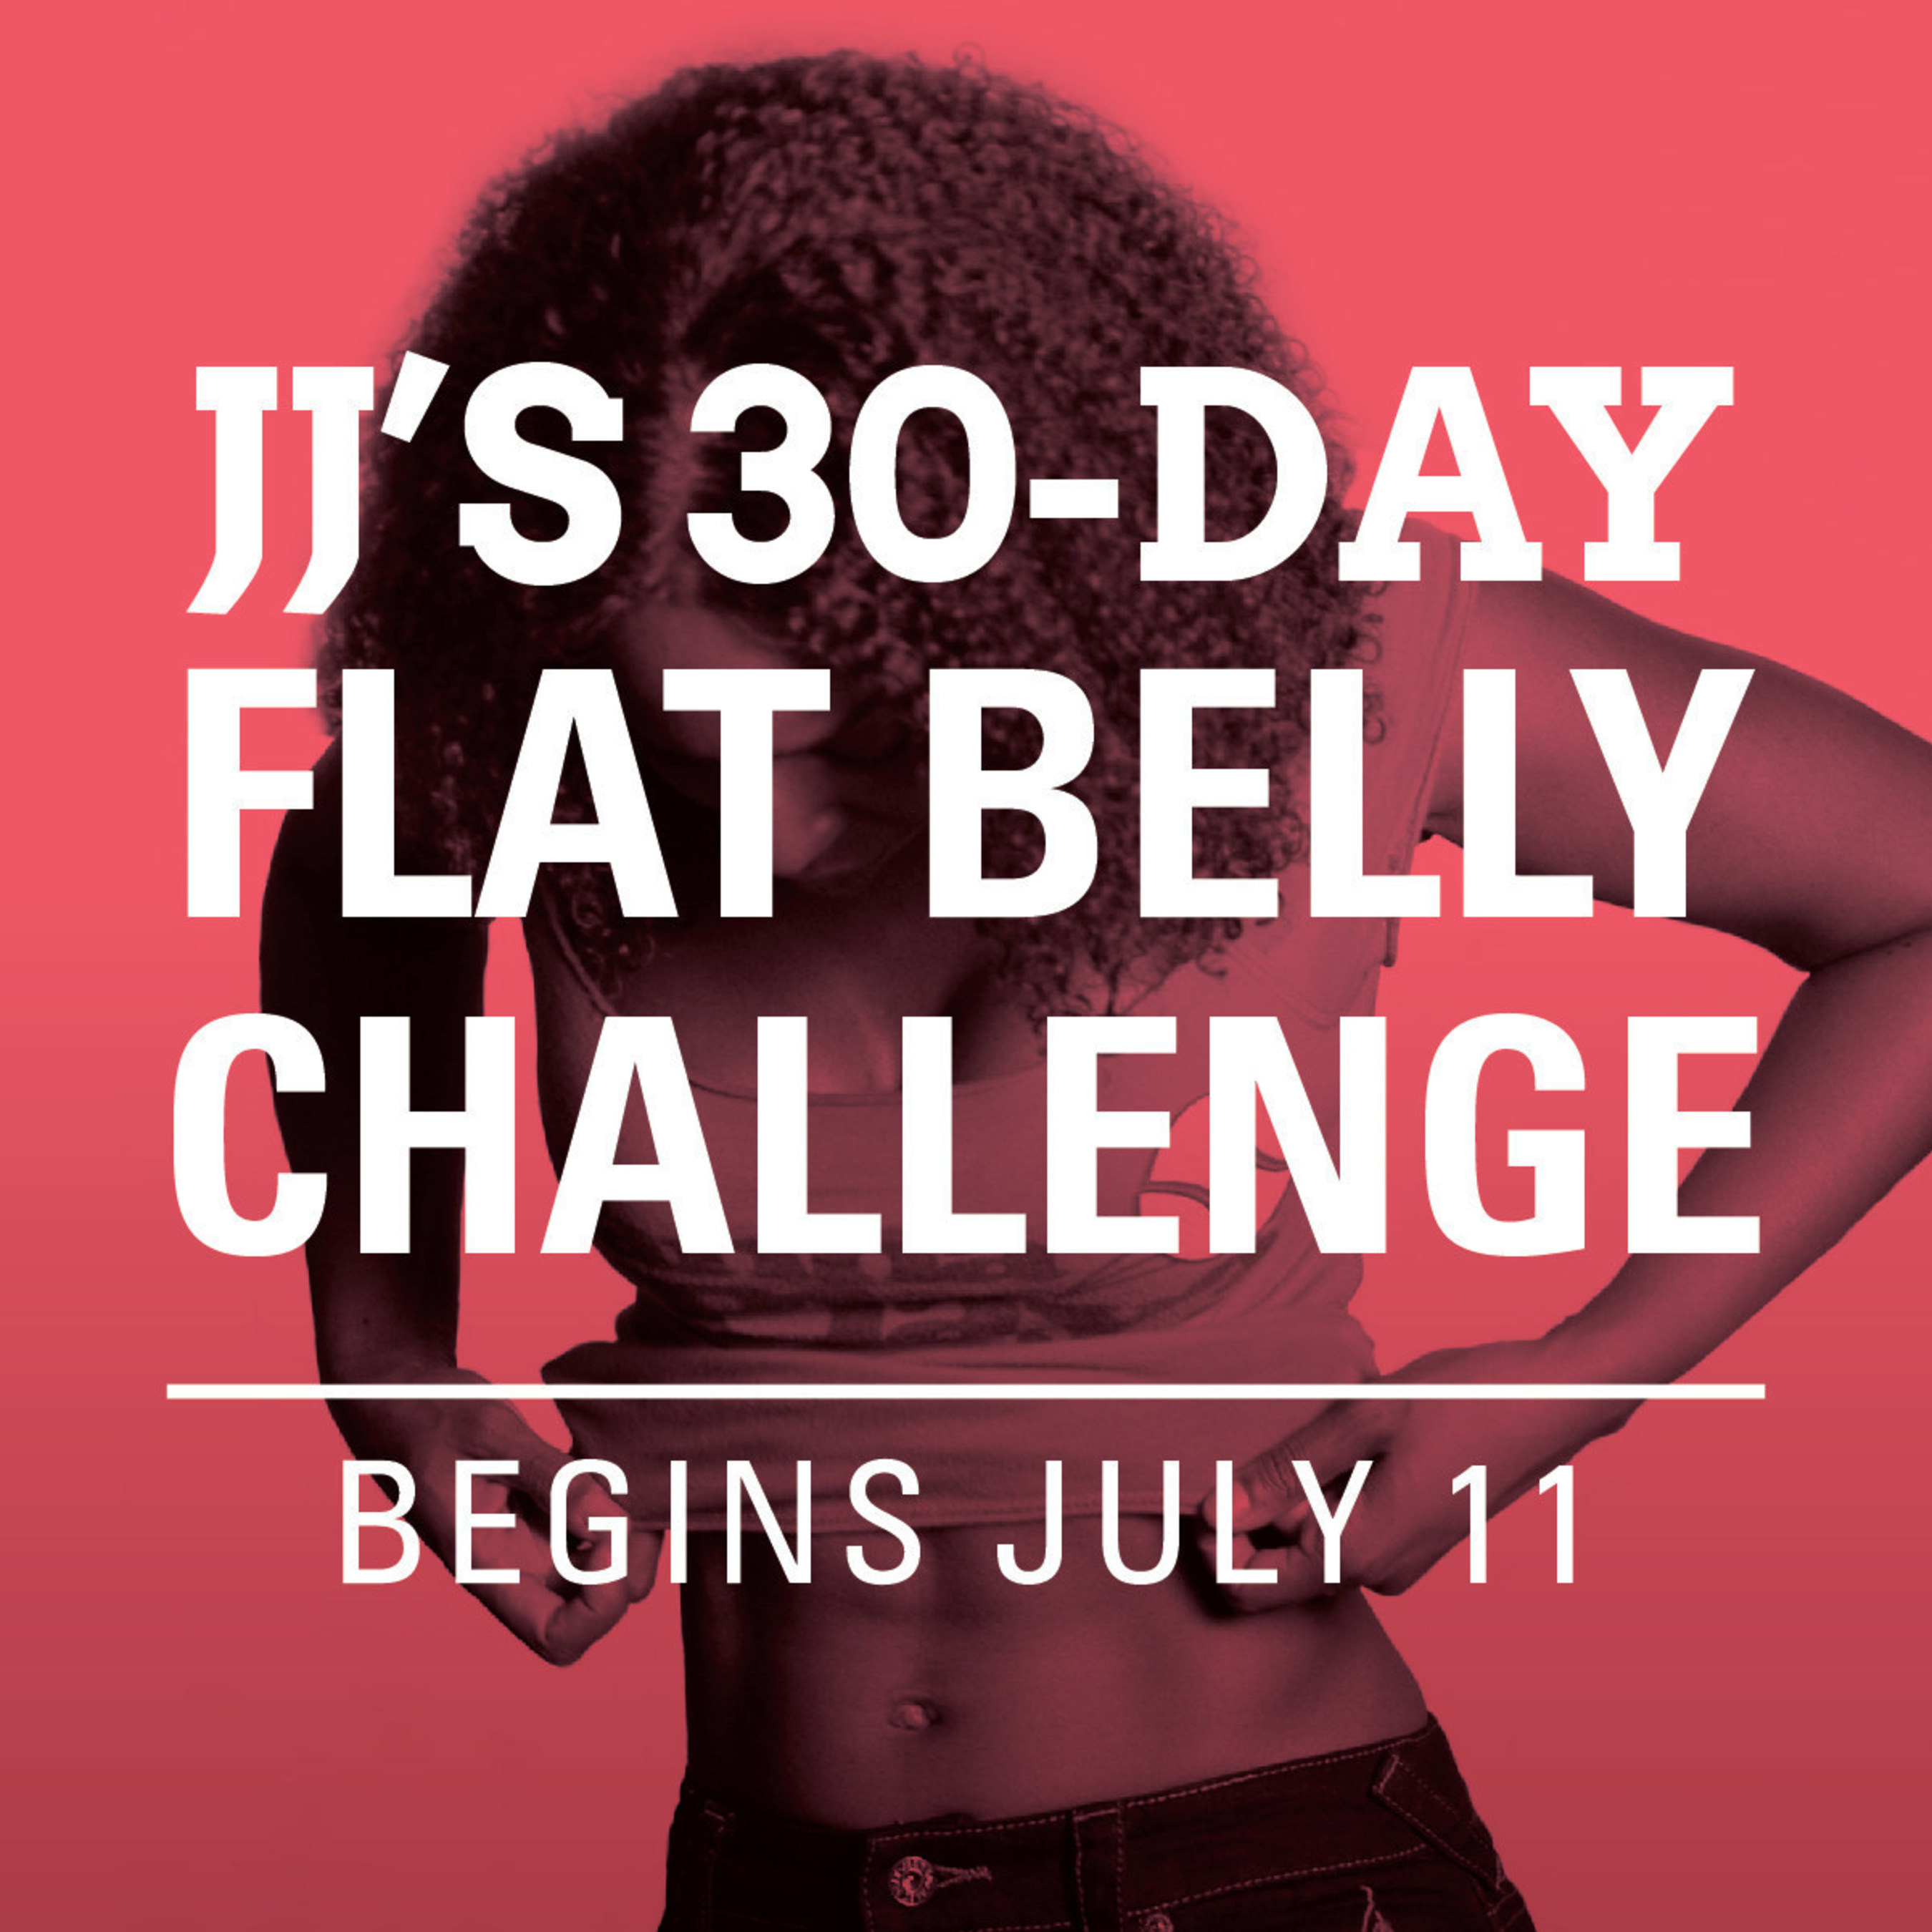 Jj smith leads nationwide 30 day flat belly challenge on monday the 10 day green smoothie cleanse continue reading jjs 30 day flat belly challenge fandeluxe Choice Image